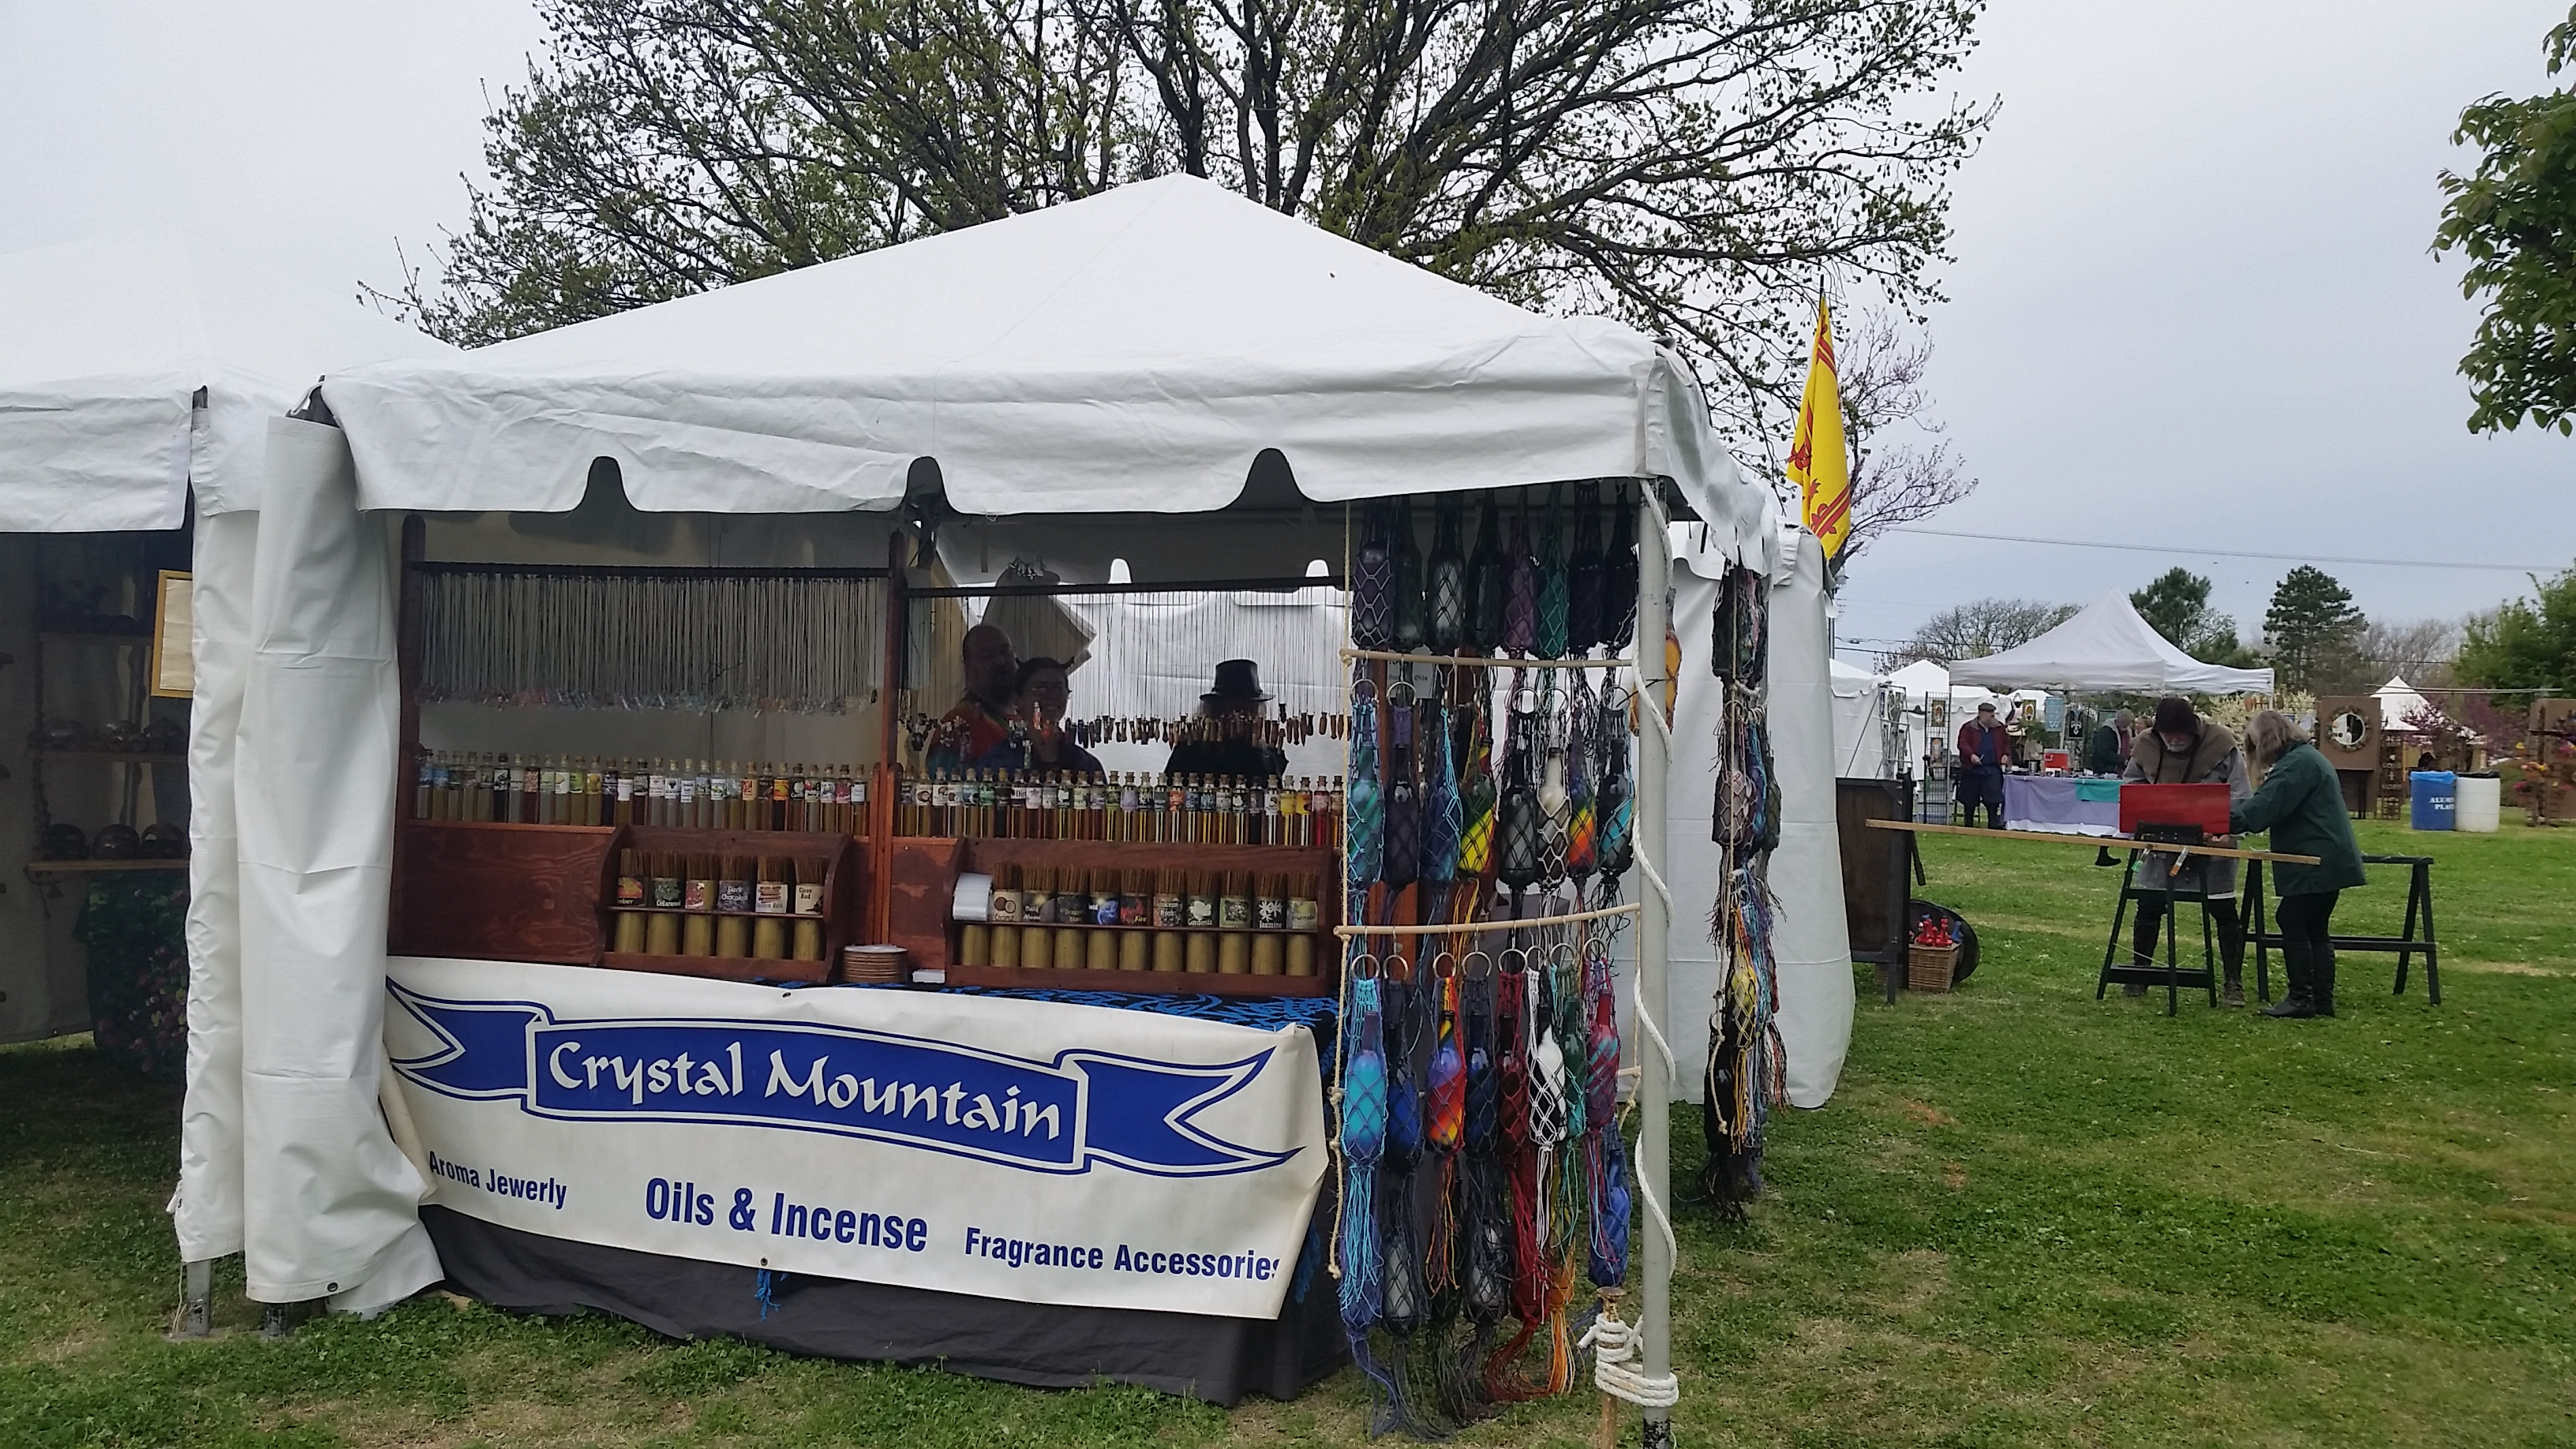 Crystal Mountain at the Norman Medieval Faire in Norman, Oklahoma